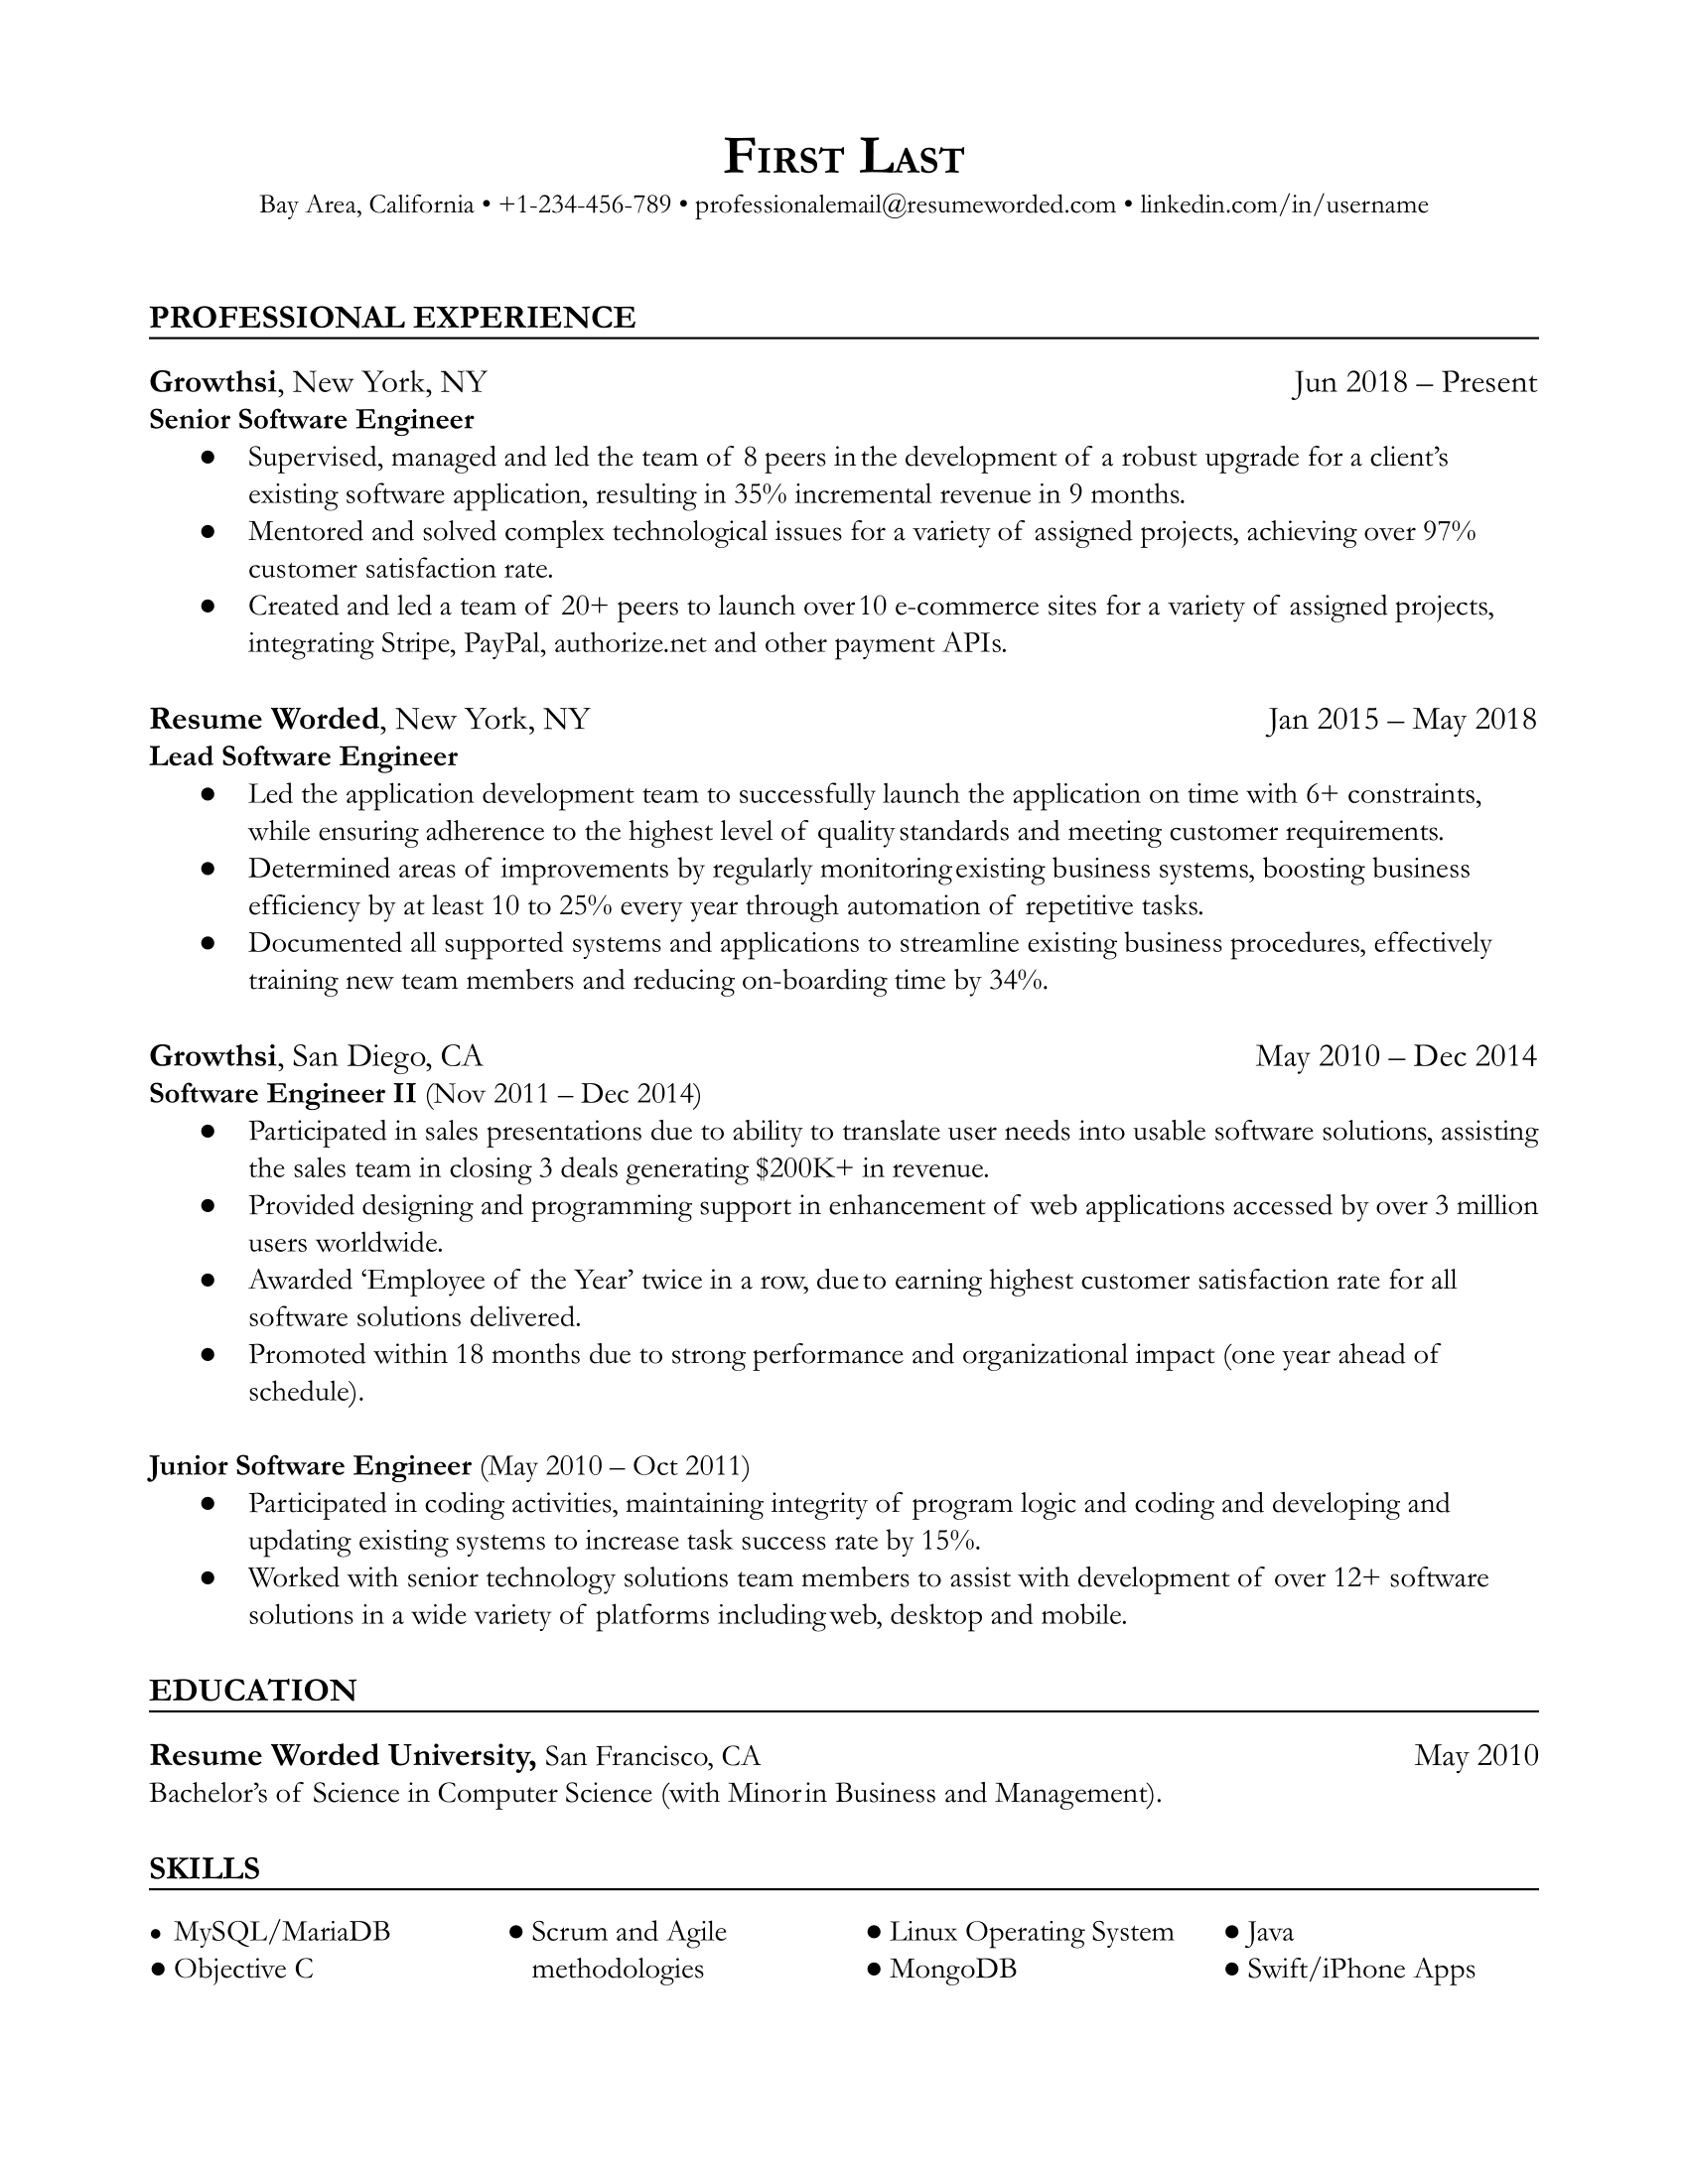 Nick is a web developer, focusing on front end development and ux,. Senior Software Engineer Resume Example For 2021 Resume Worded Resume Worded